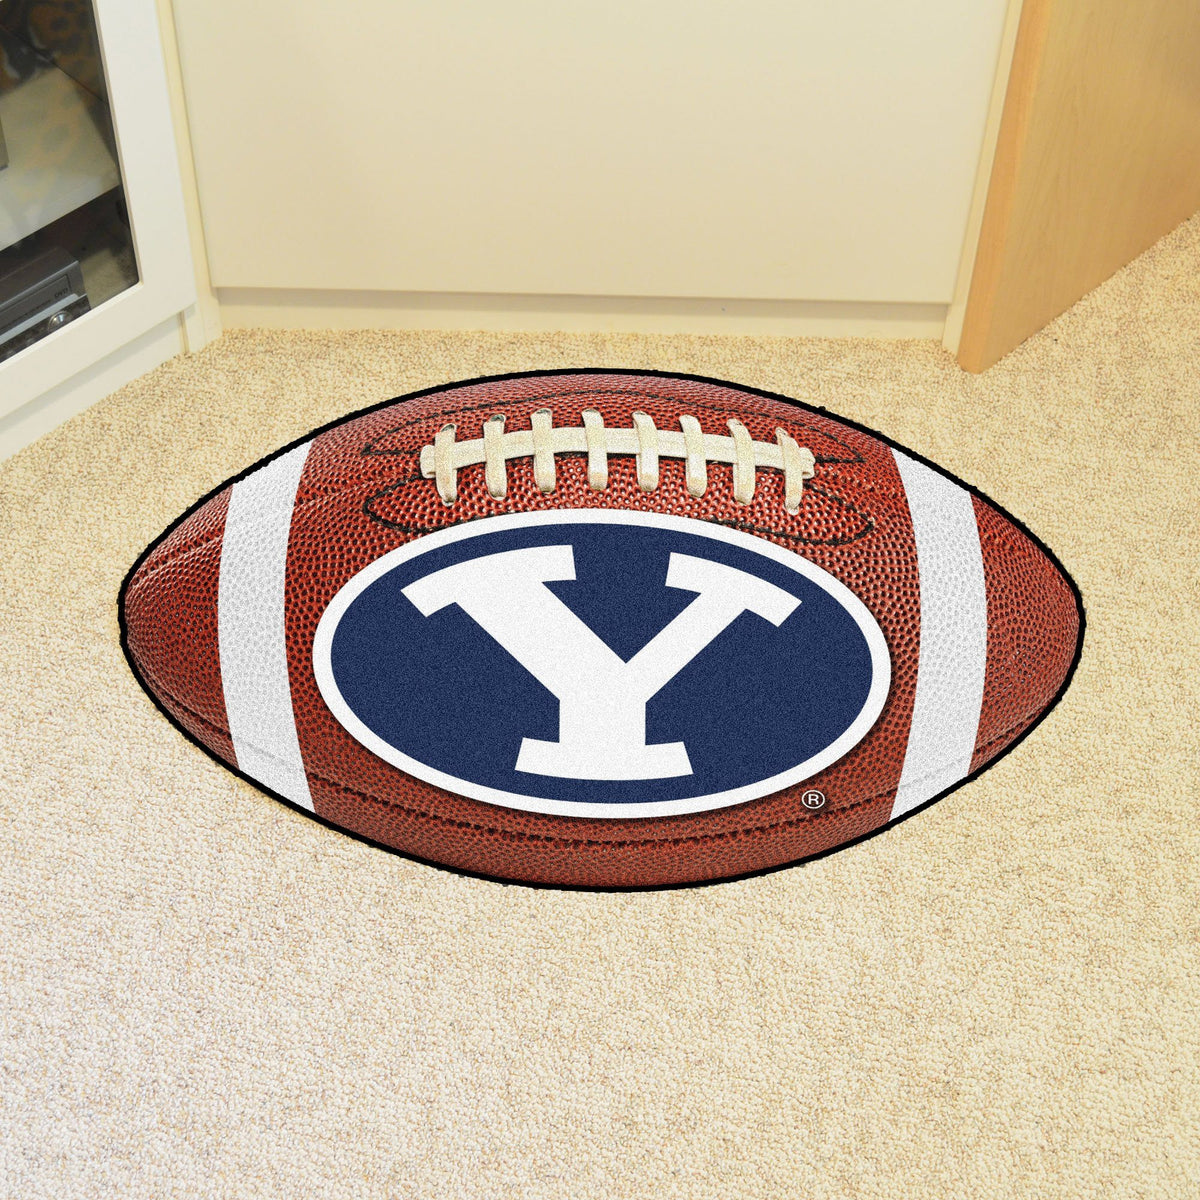 Collegiate - Football Mat: A - K Collegiate Mats, Rectangular Mats, Football Mat, Collegiate, Home Fan Mats BYU